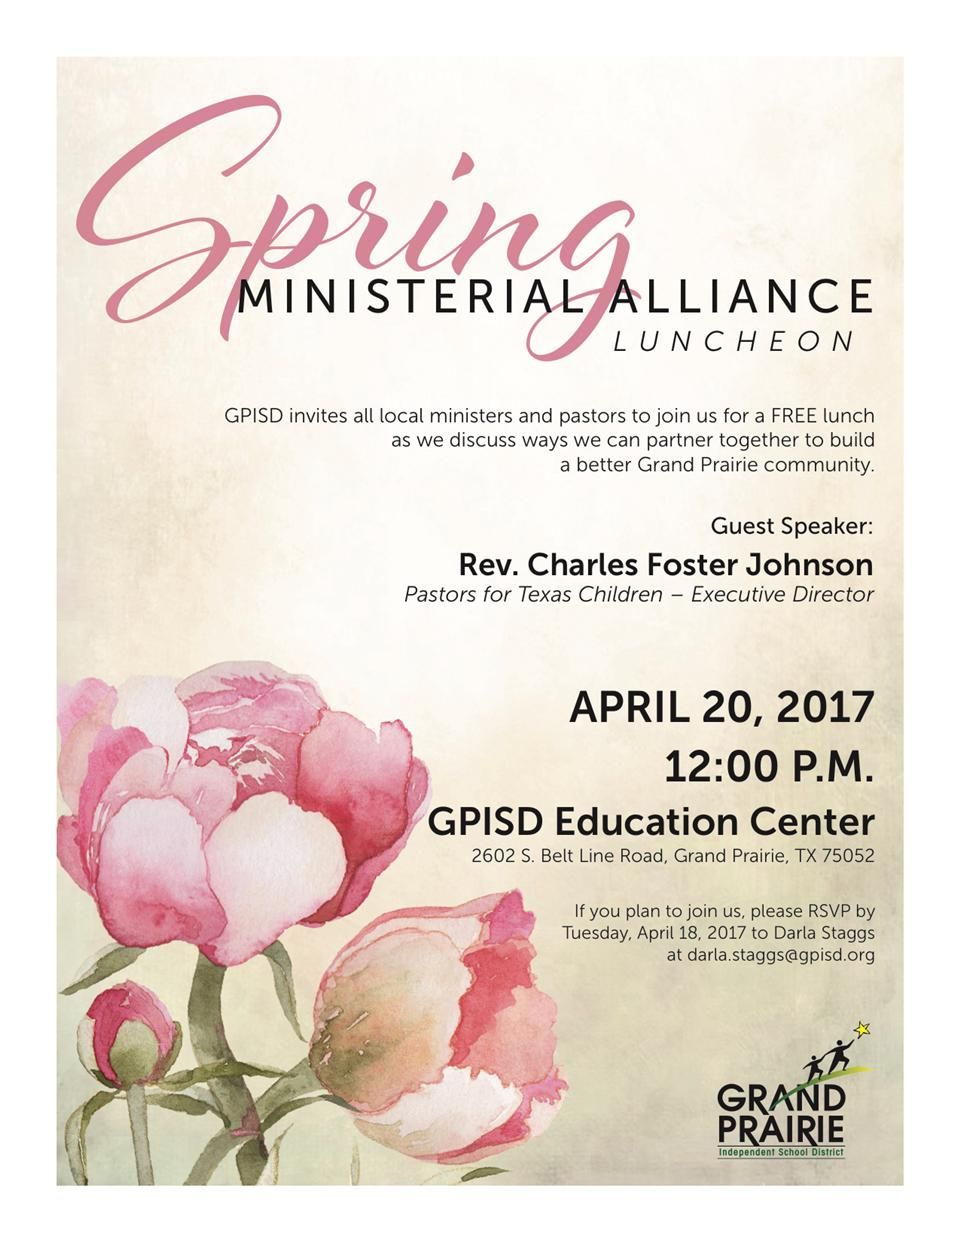 Ministerial Alliance Spring Luncheon - flyer